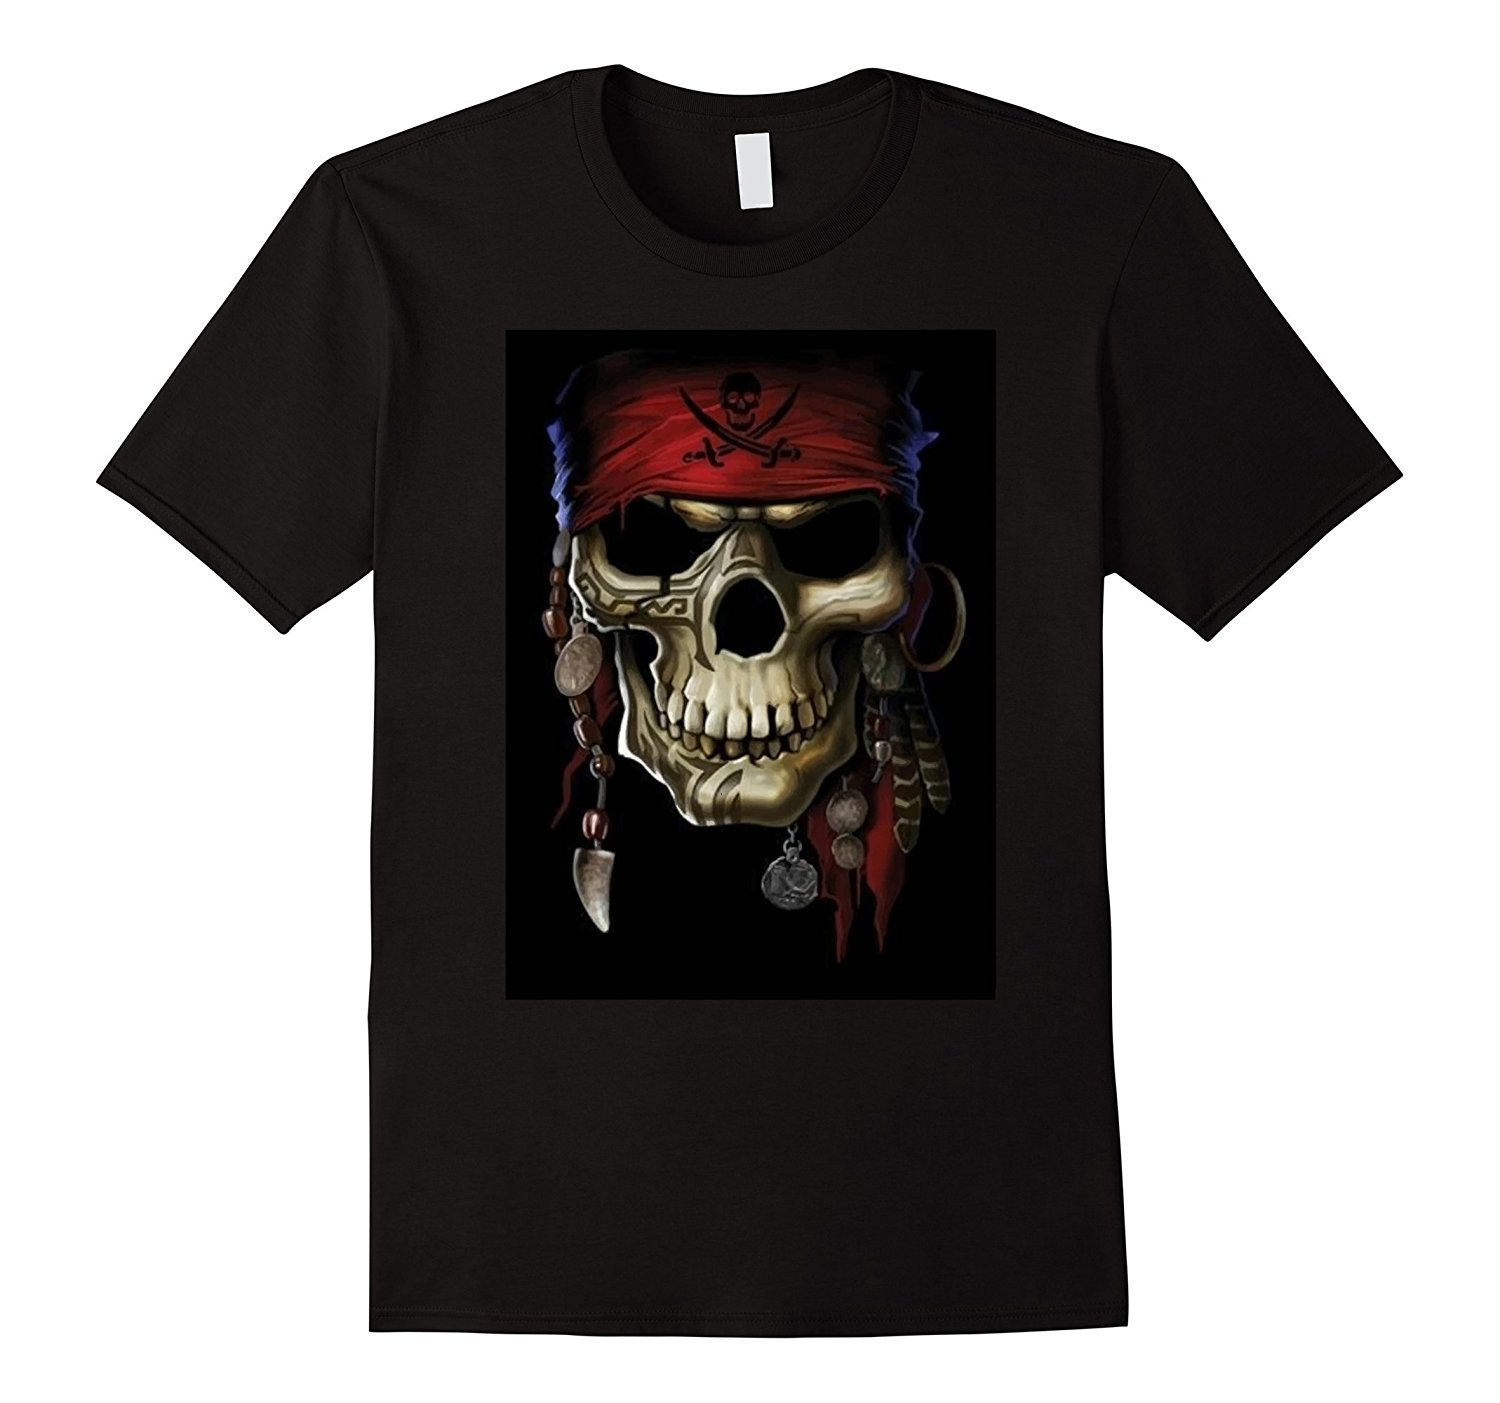 Talk Like A Pirate Day T Shirt for Men Women Top Quality Cotton Casual Men T Shirts Men Free Shipping Letter Top Tee